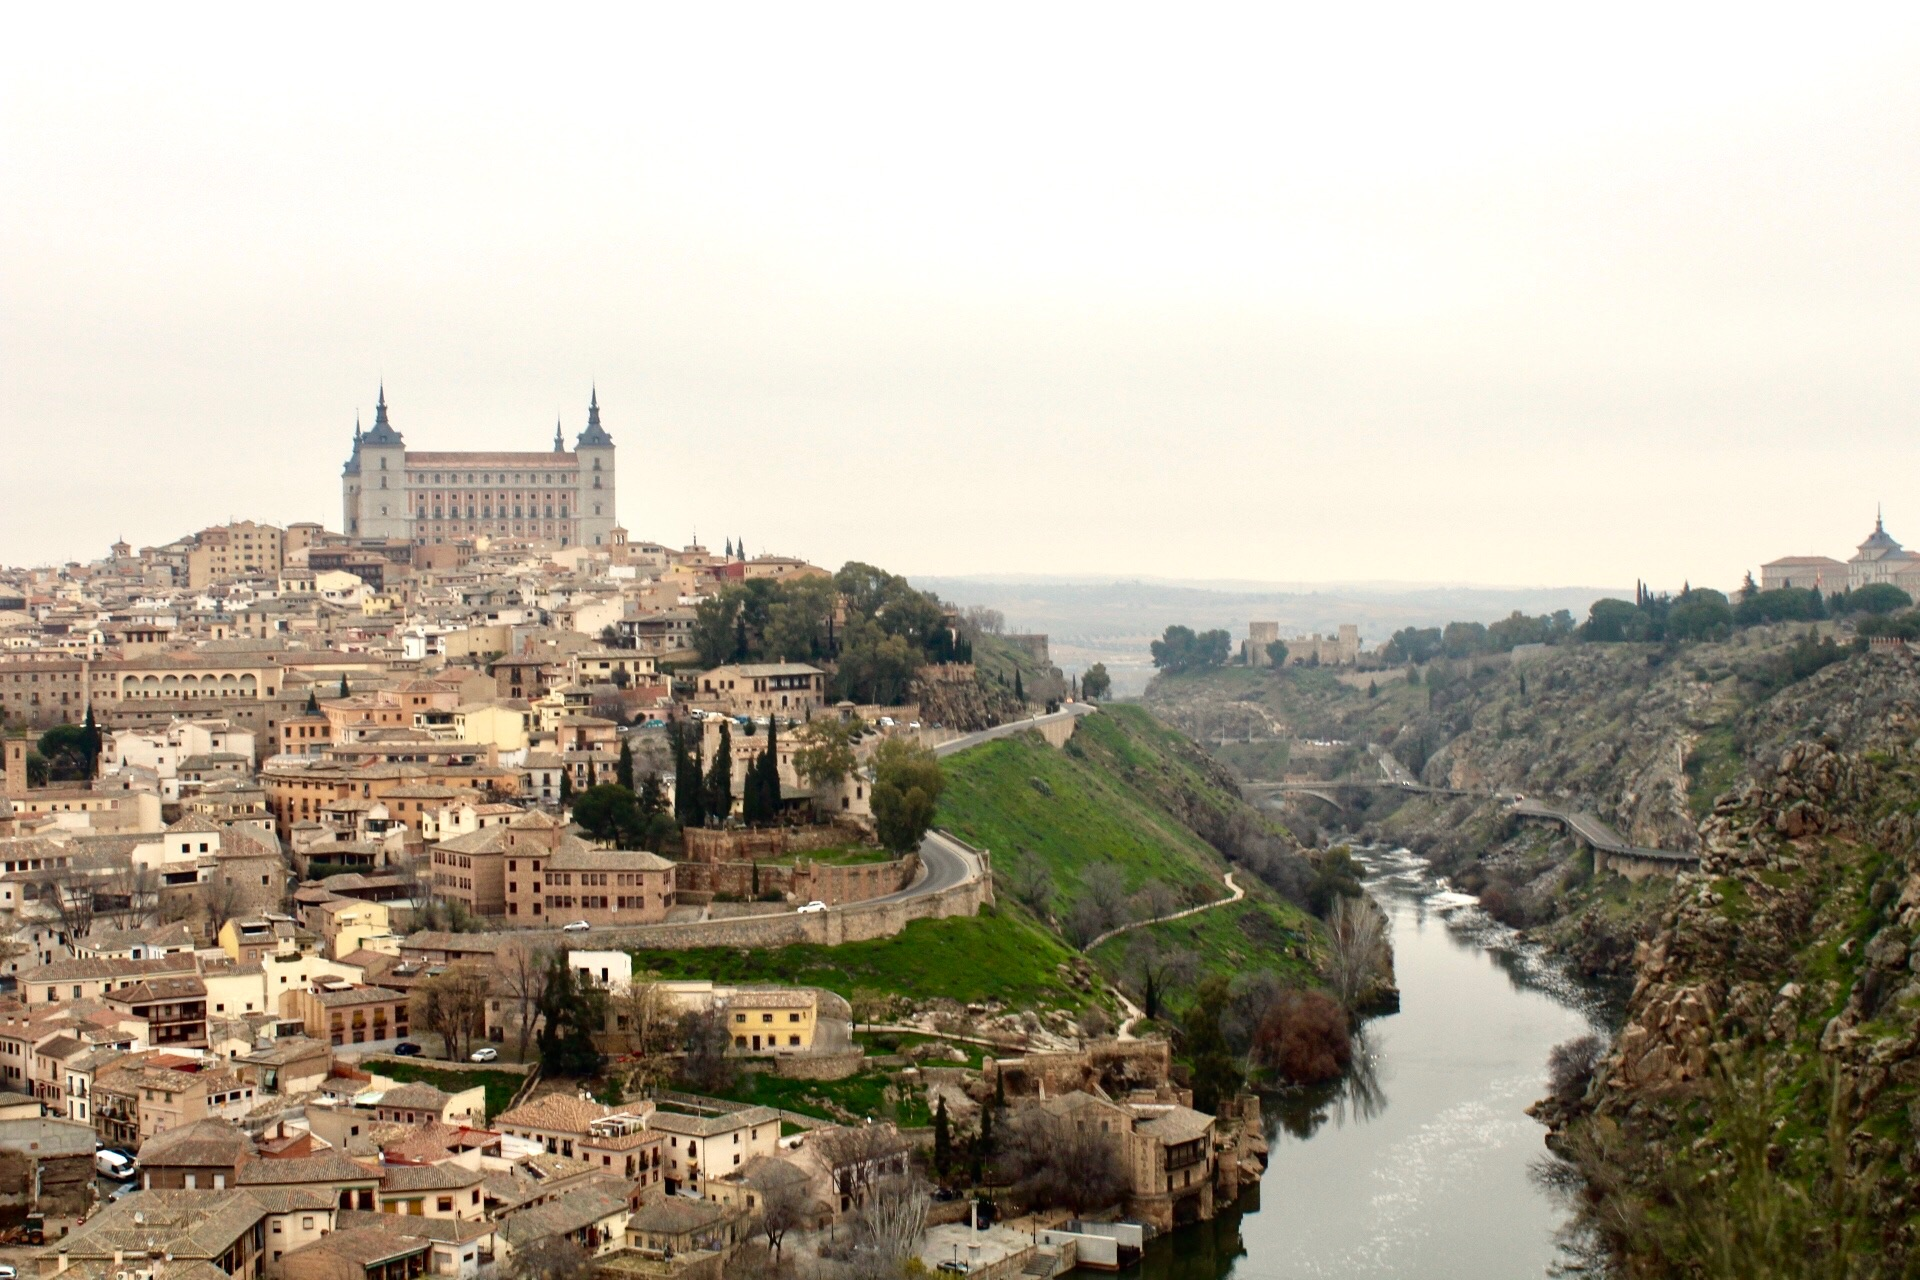 Toledo, Spain - Taken during a winter program